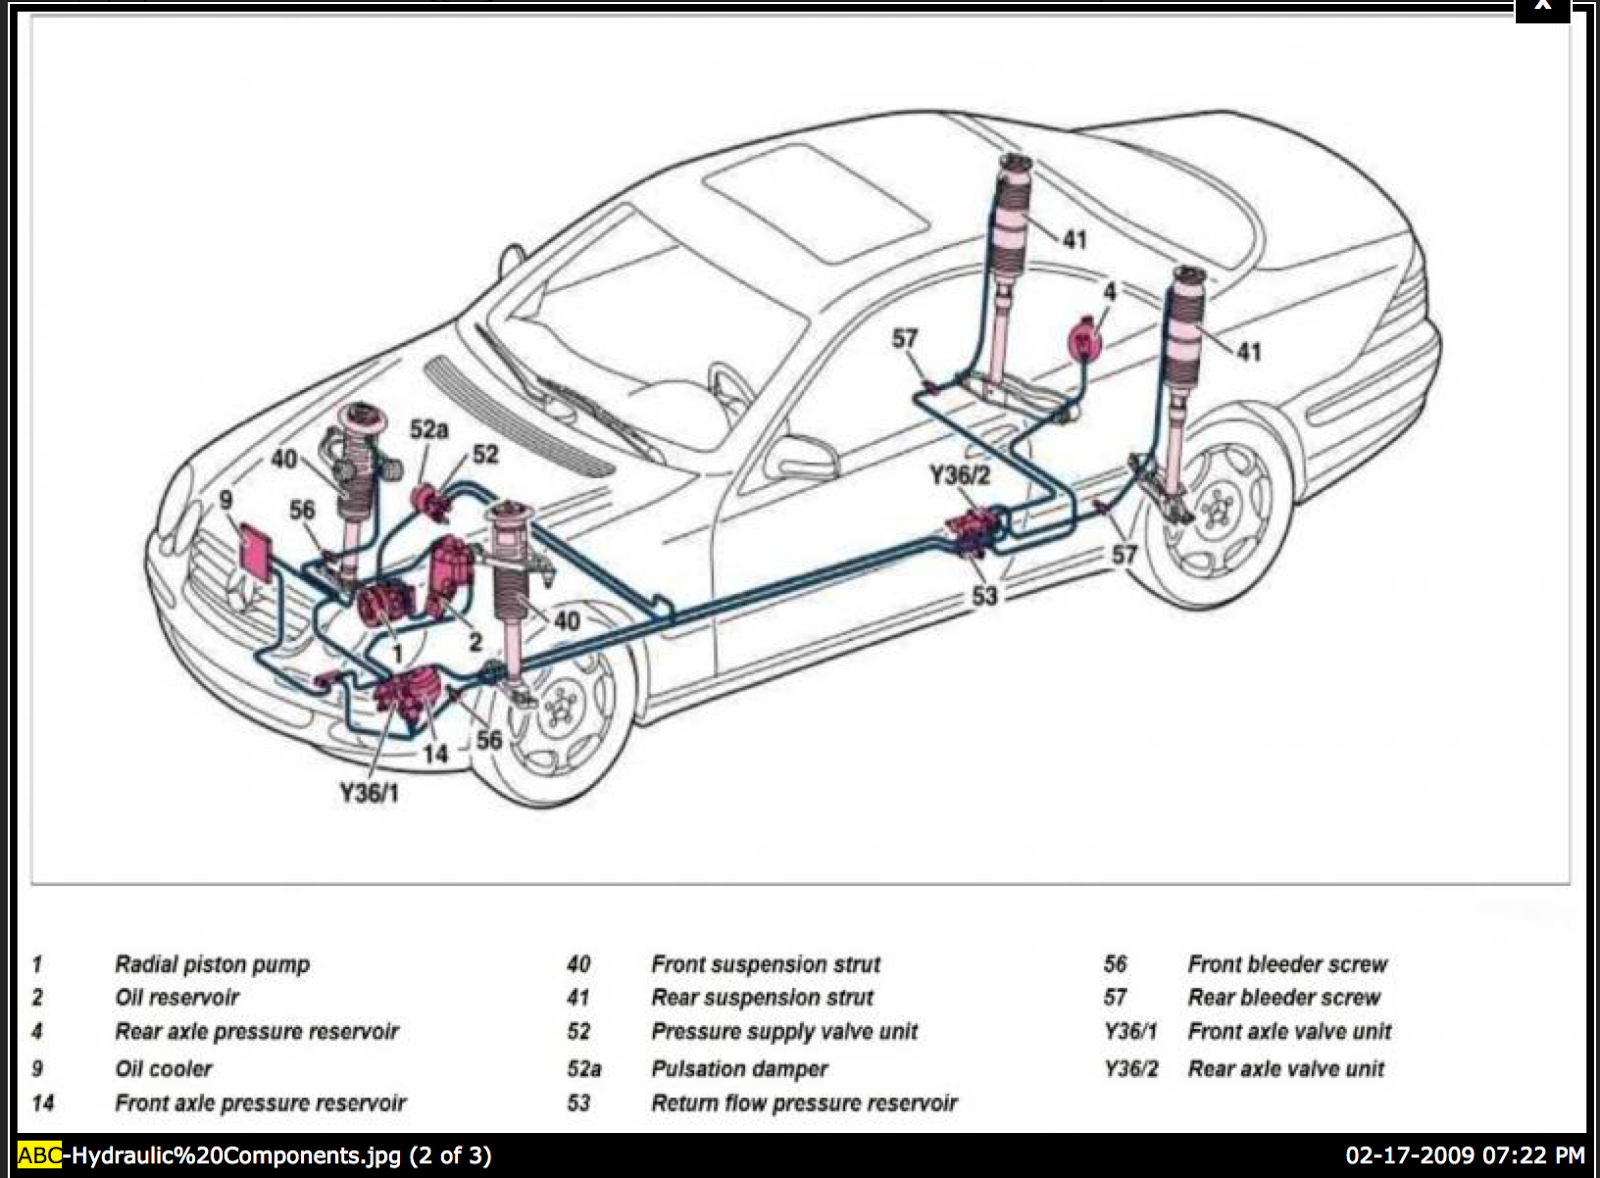 Mercedes Damage Diagrams Trusted Schematics Wiring Mb C300 Diagram Benz Abc System Troubleshooting Guide Rh Drive Carefully Blogspot Com Relay